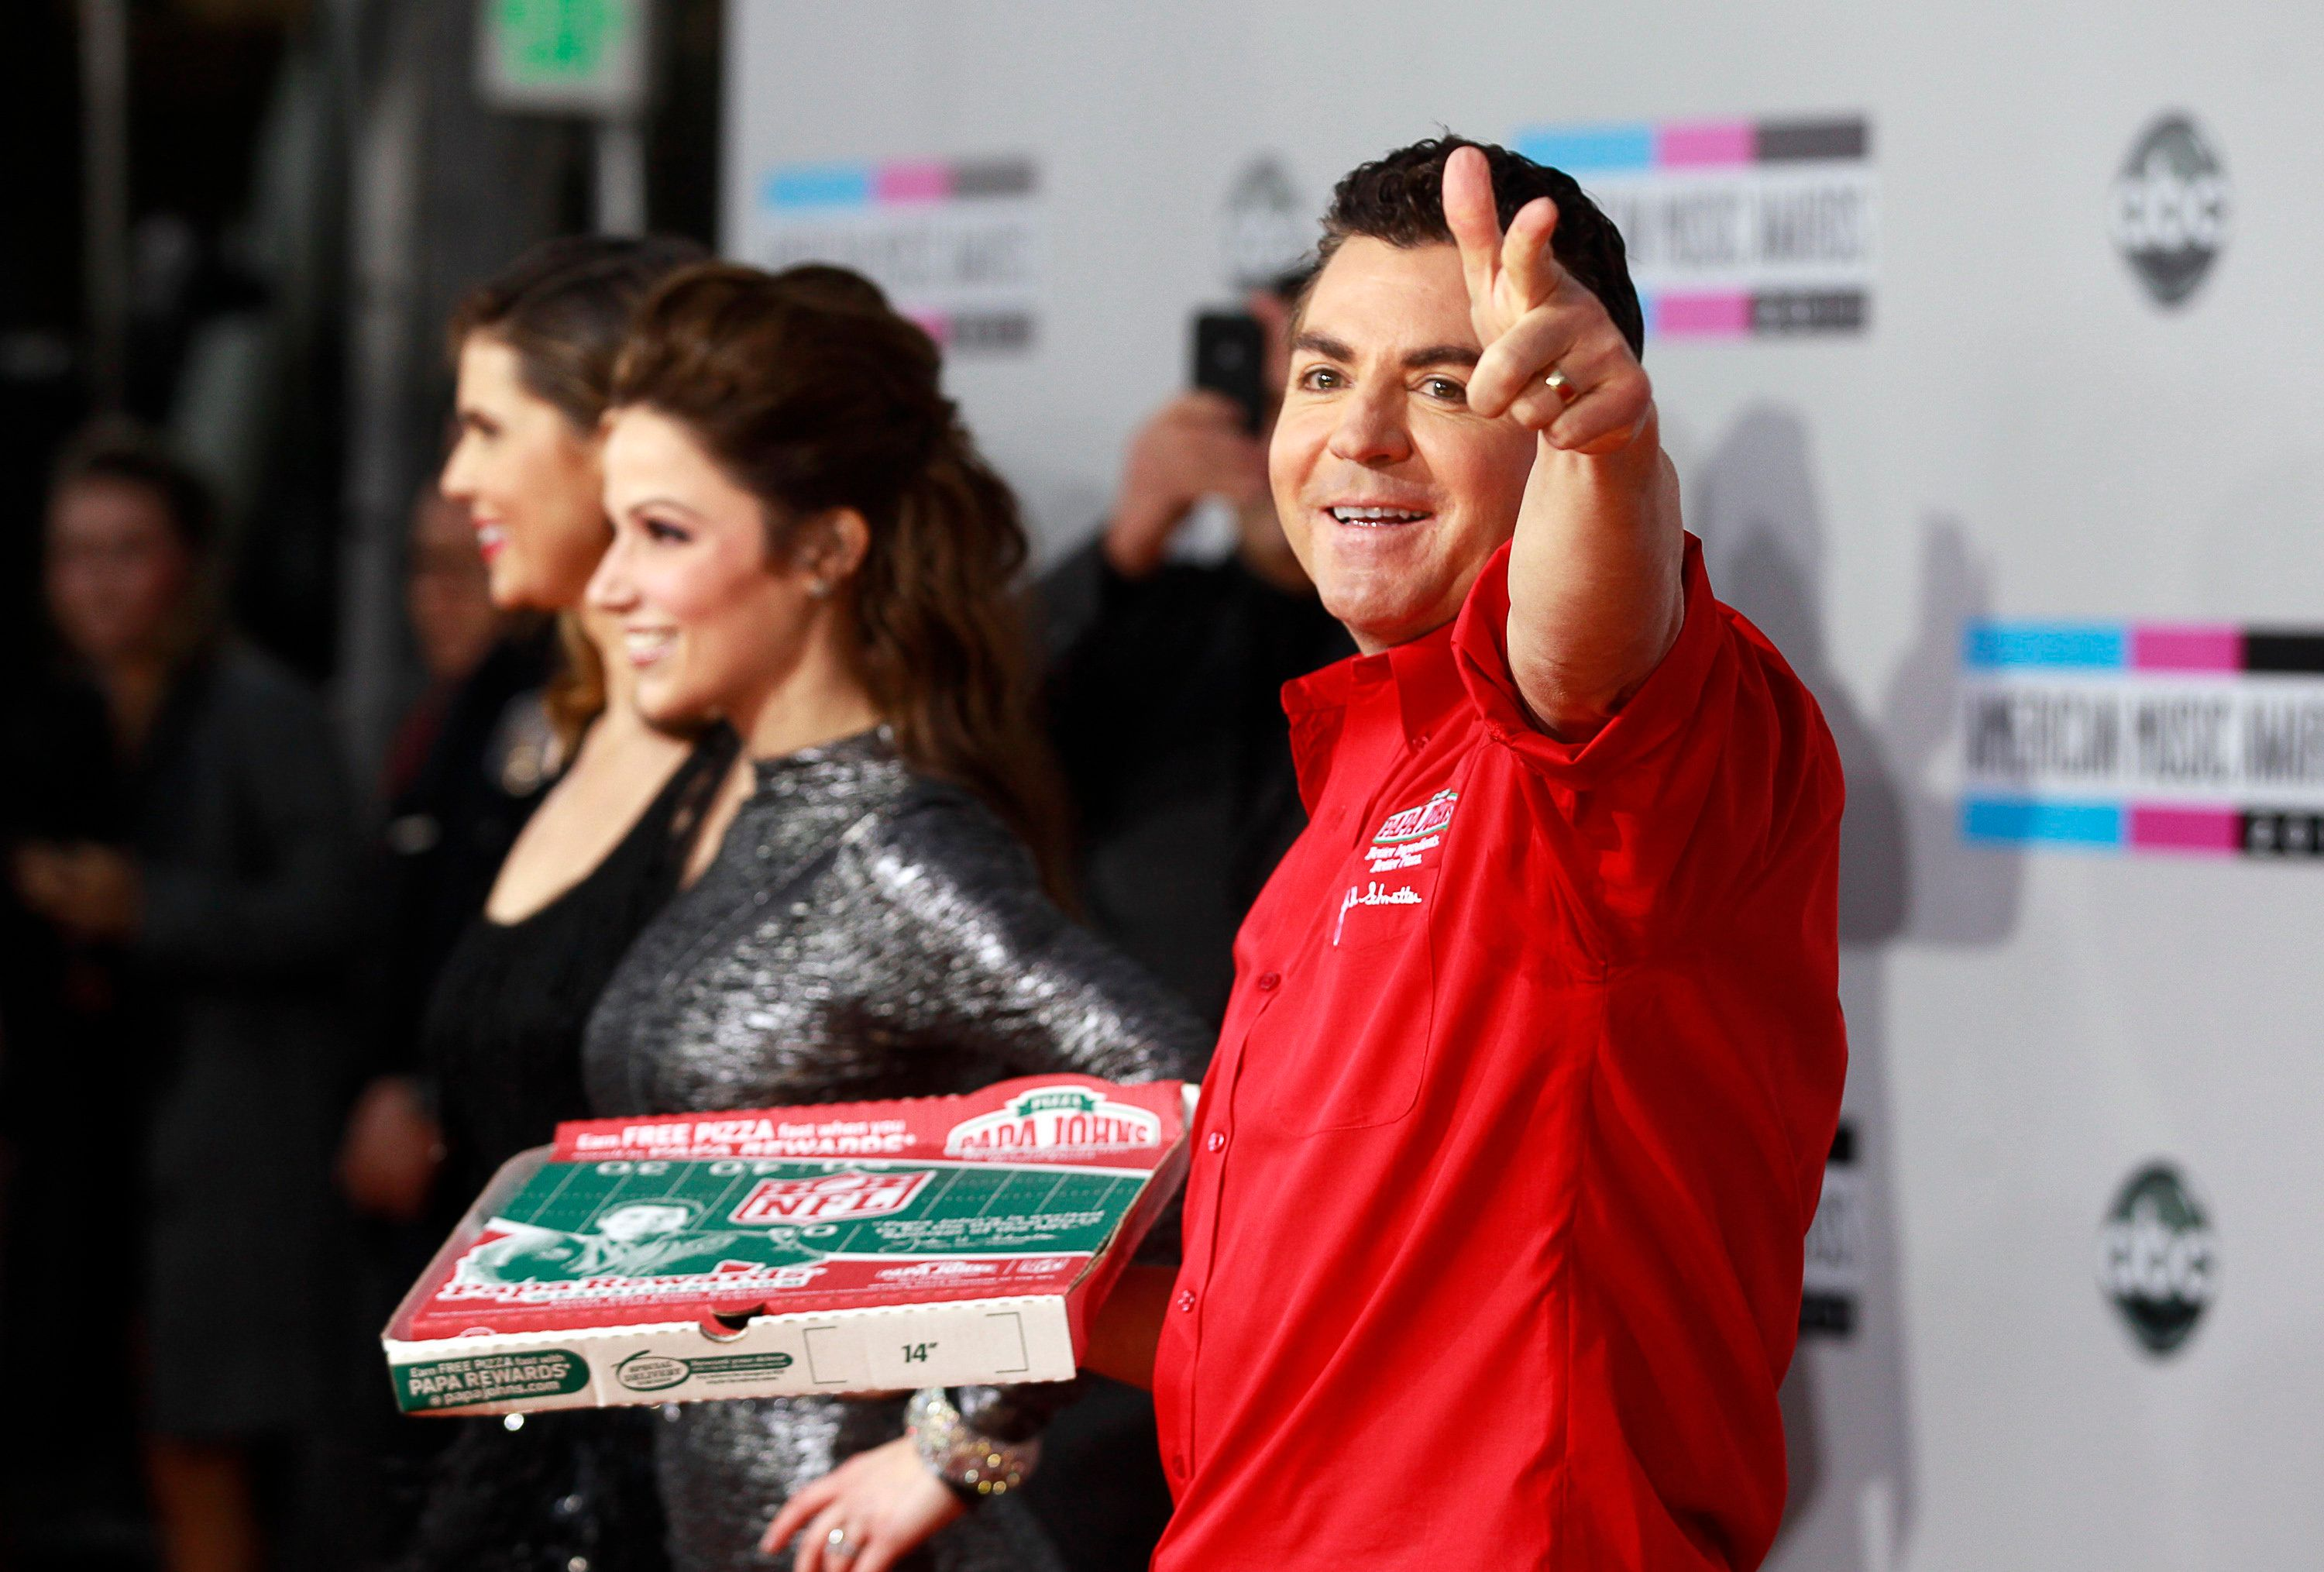 Papa John's Founder John Schnatter Exits as CEO